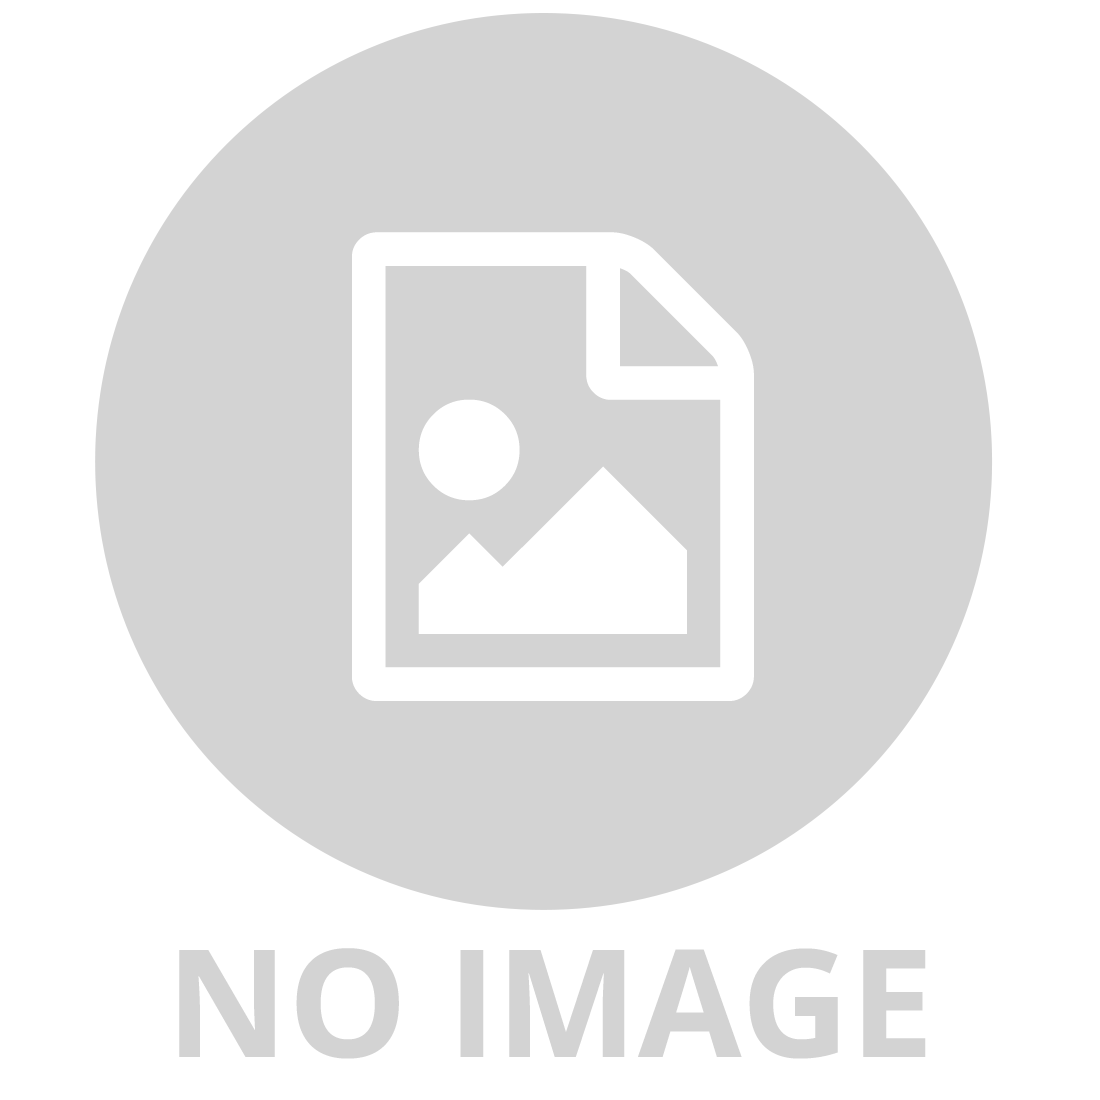 XSEN002PIR Surface Sensor - White